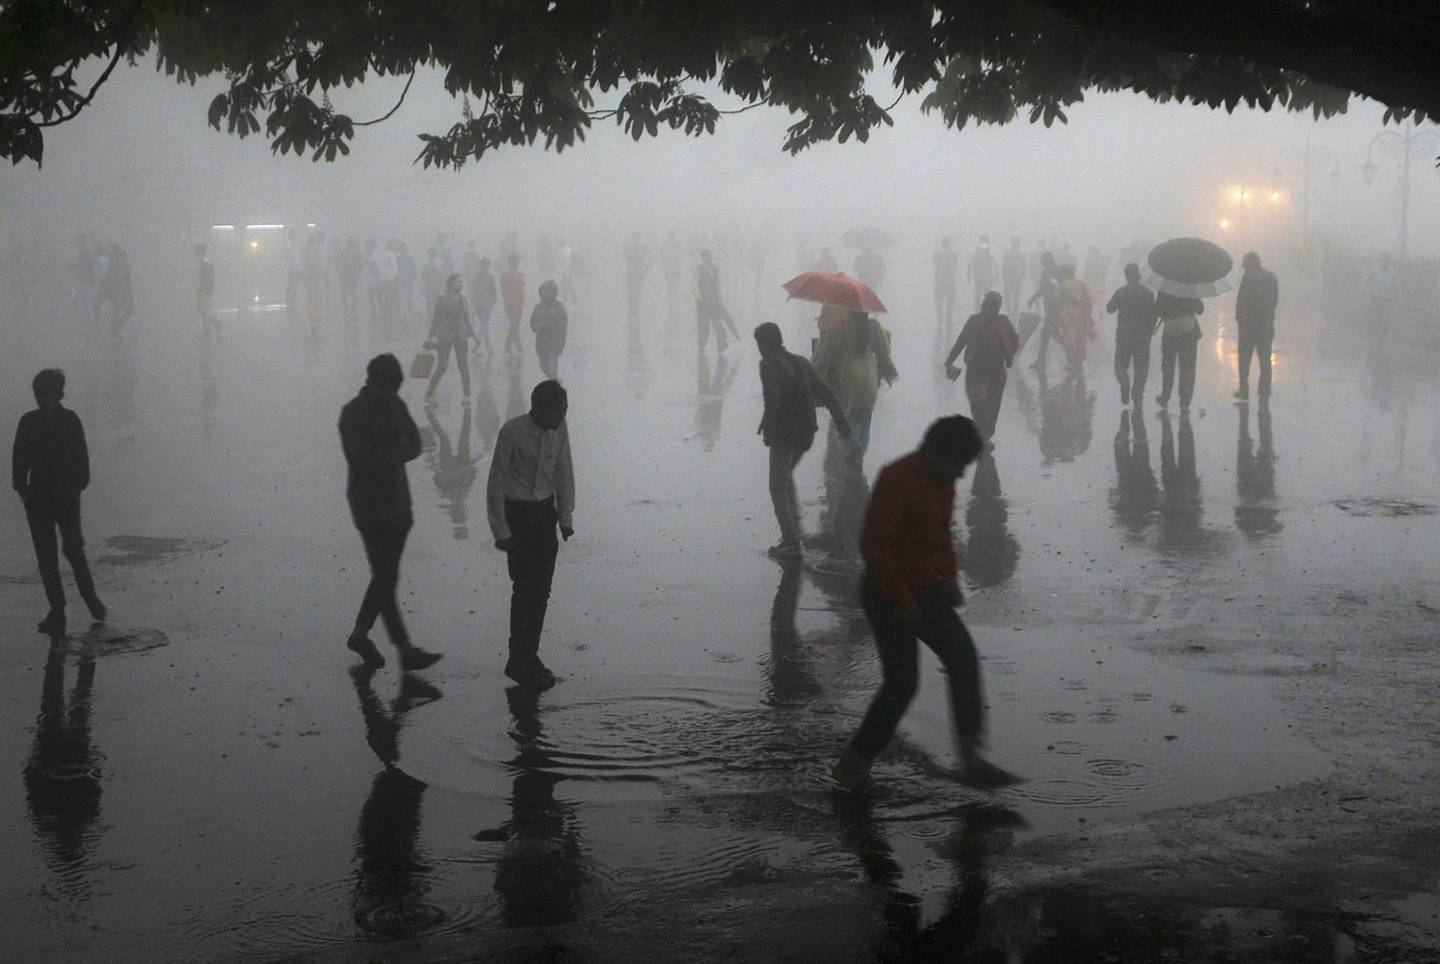 TOPSHOT - This photo taken on May 2, 2018 shows people walking under heavy rainfall in the northern hill town of Shimla in Himachal Pradesh state. Dust storms tore across northern India killing at least 77 people and injuring 143 as trees and walls were flattened by powerful winds, officials said May 3.   / AFP PHOTO / -